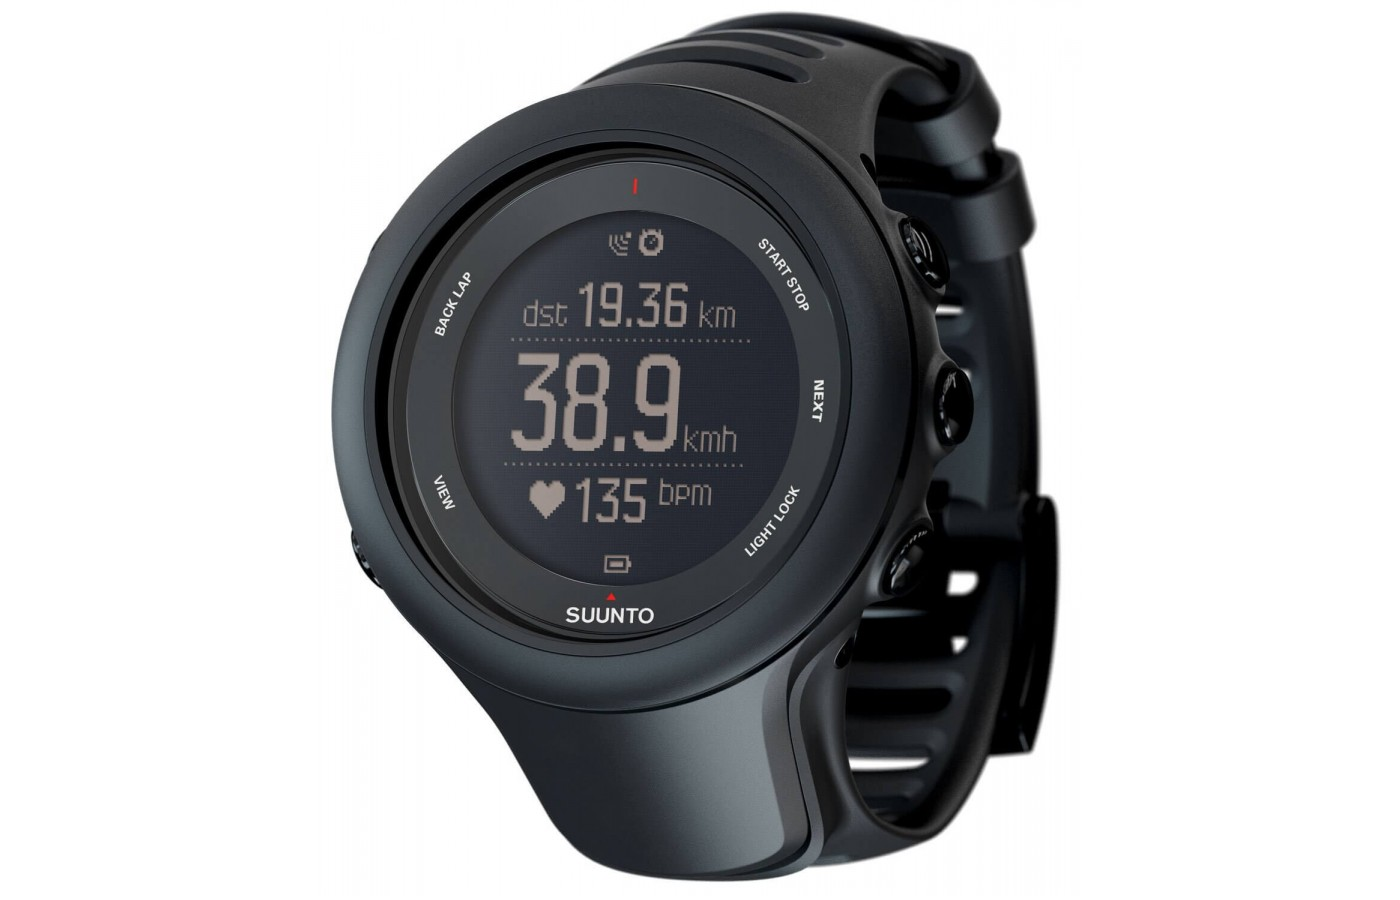 The Suunto Ambit3 Sport features Bluetooth Smart connectivity